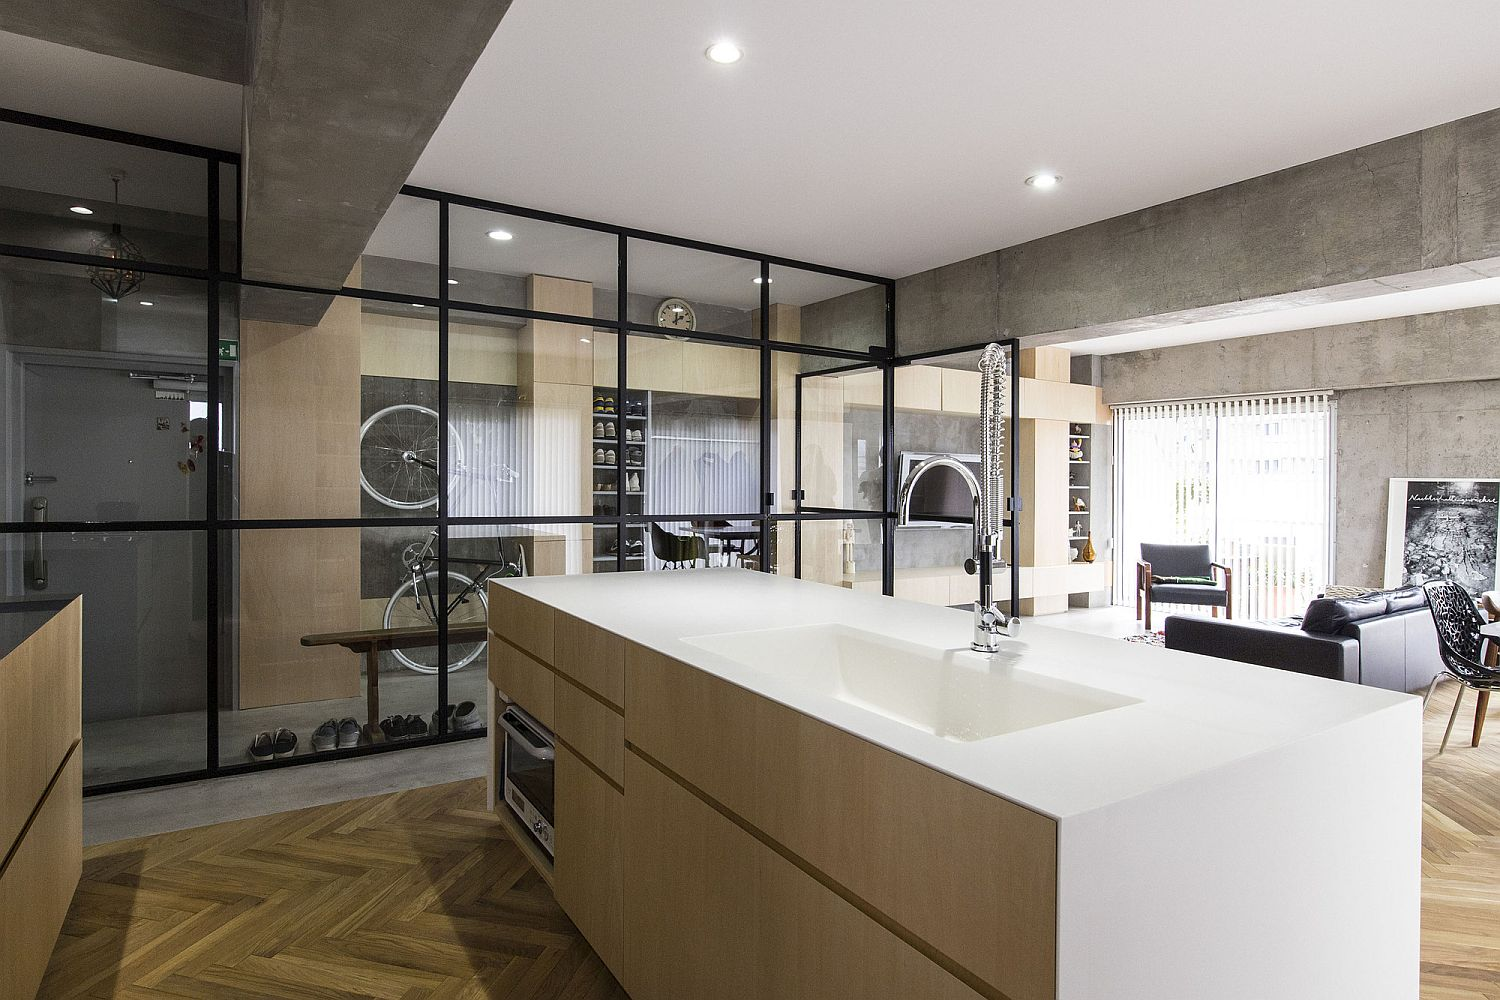 Kitchen-with-polished-counter-and-herringbone-pattern-floor